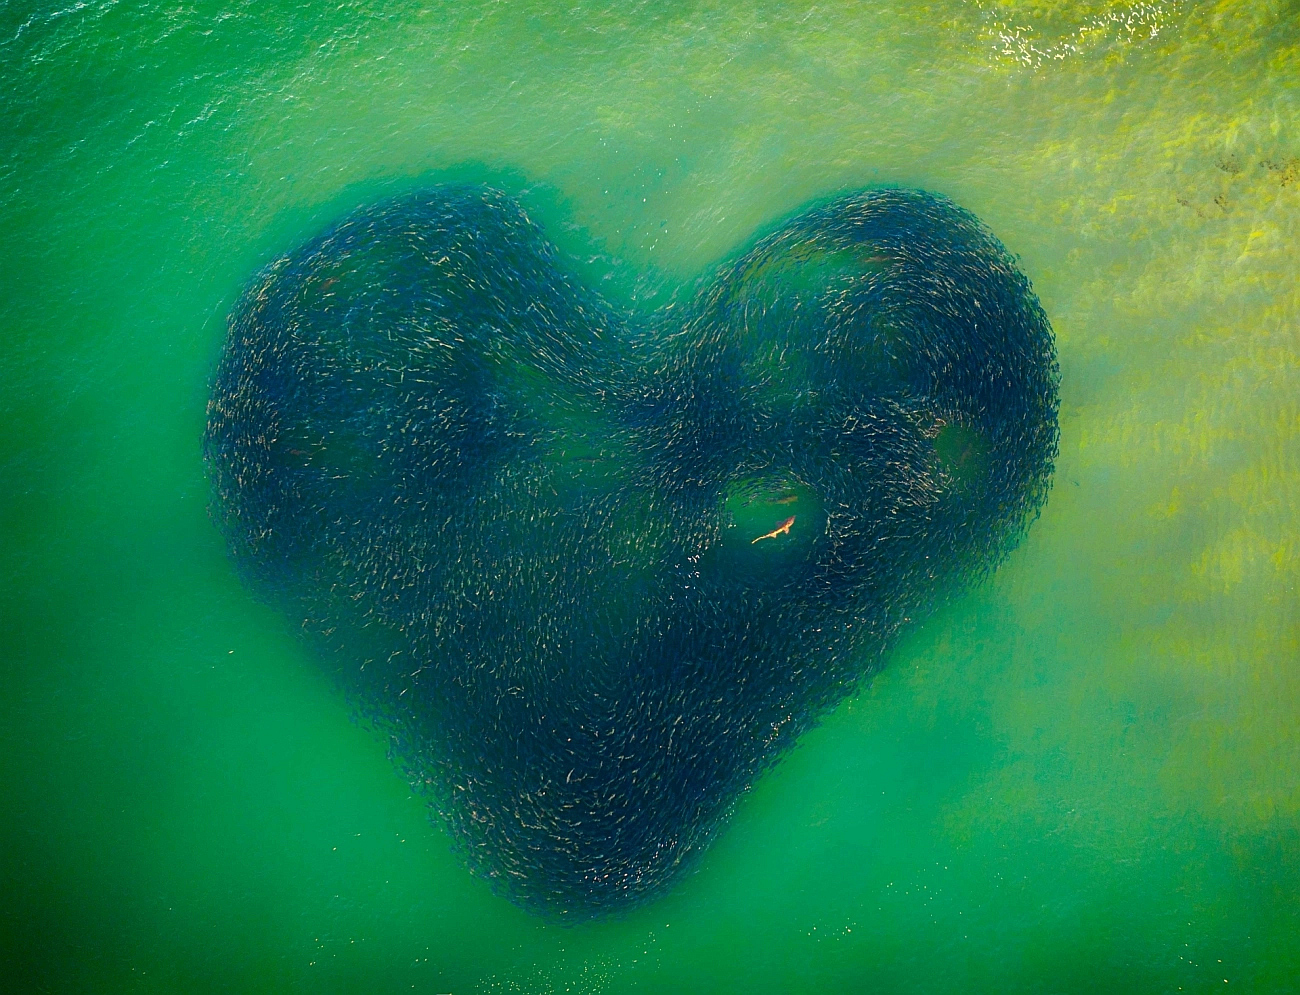 """Love Heart of Nature"" (autor: Jim Picôt)"